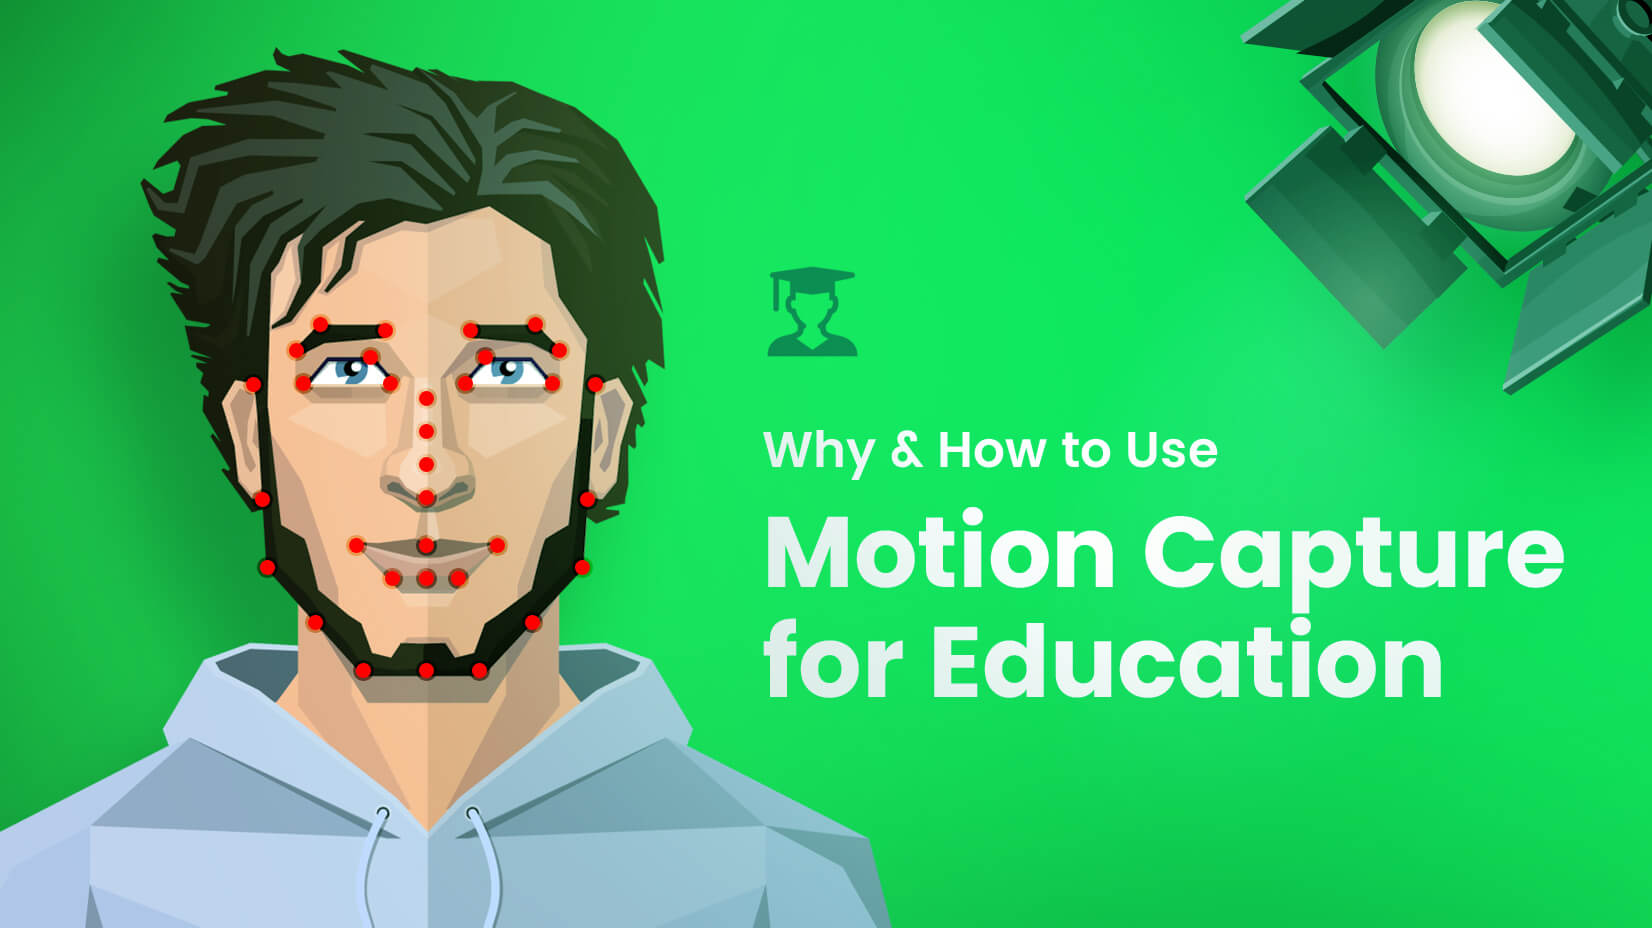 Why & How to Use Motion Capture for Education